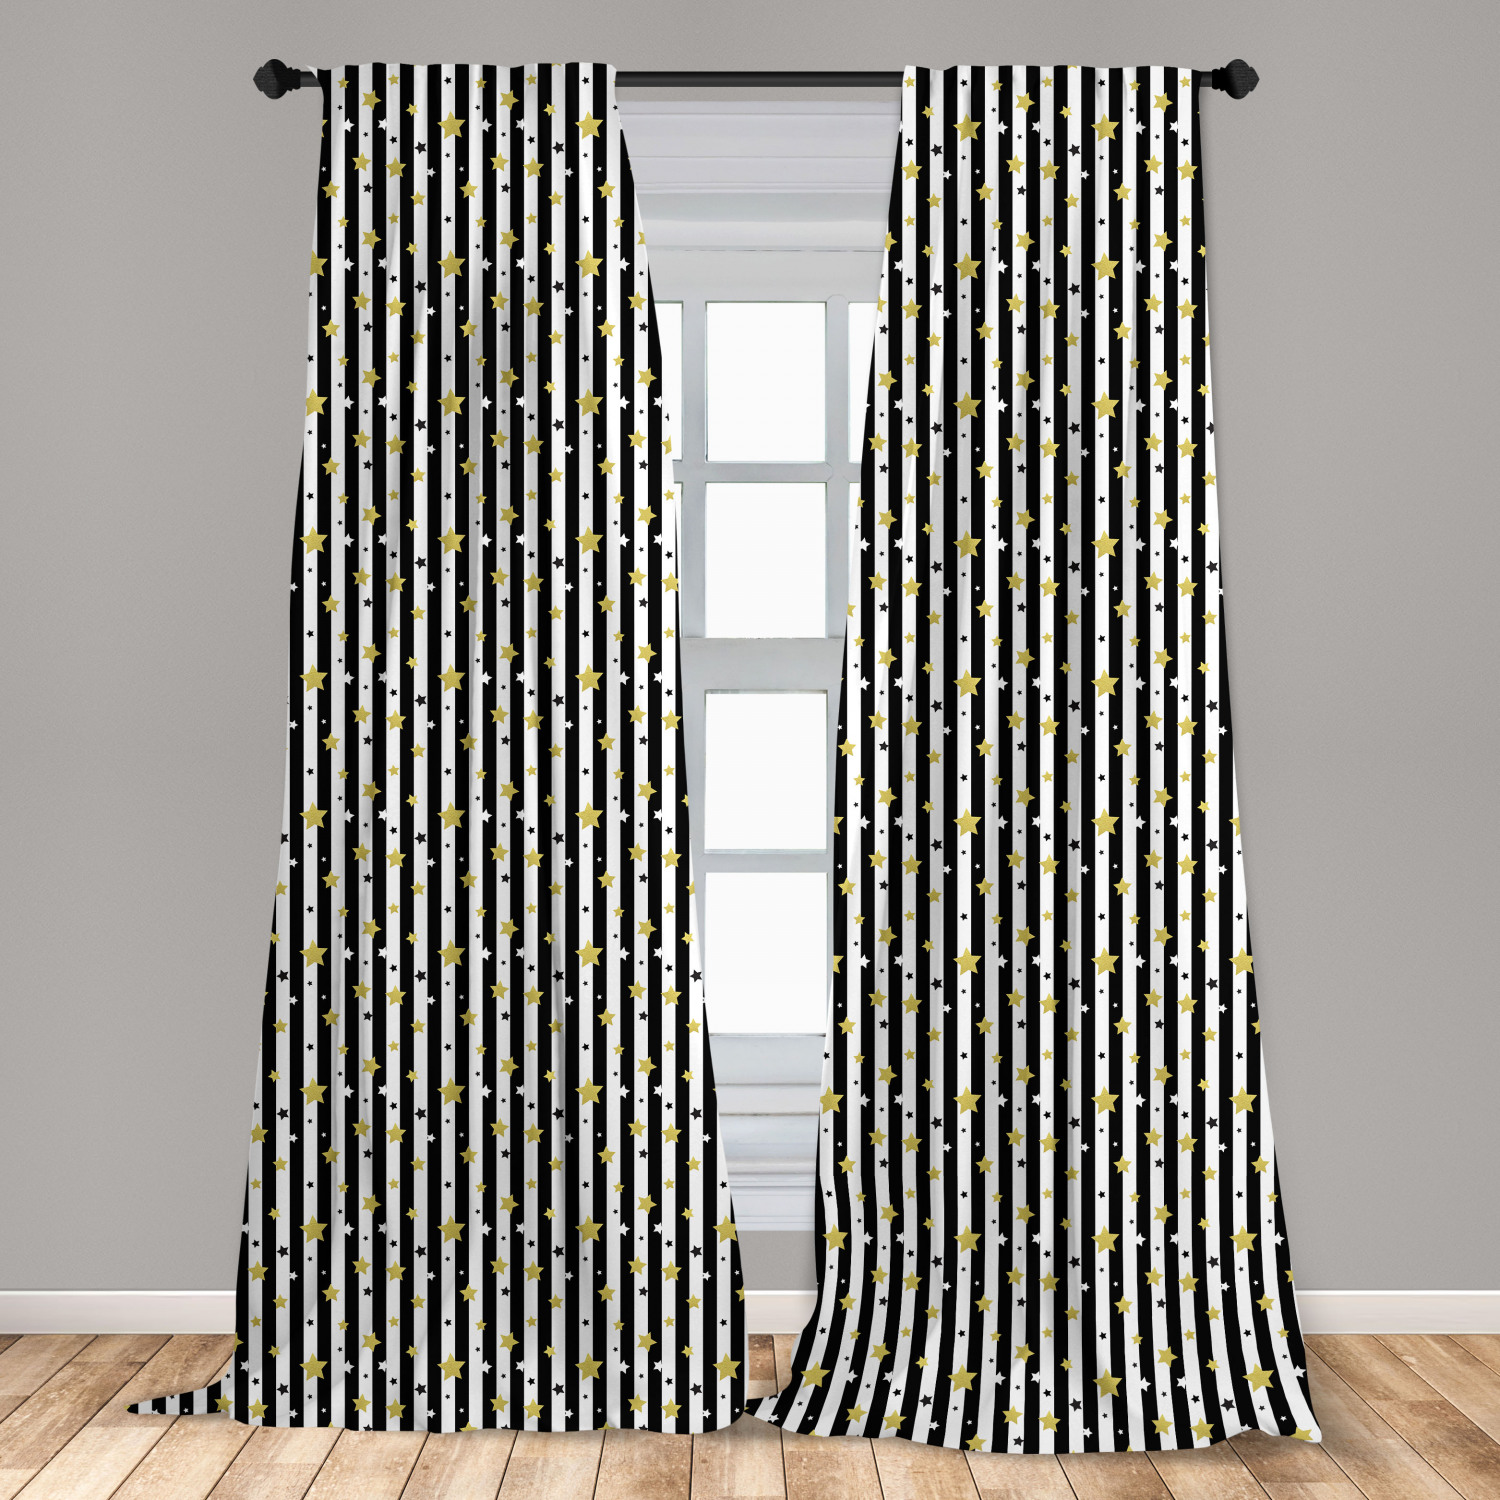 Shop for black curtains in bedroom at bed bath & beyond. Striped Curtains 2 Panels Set Black And White Lines Background With Big And Small Stars Pattern Print Window Drapes For Living Room Bedroom 56 W X 84 L Black White And Yellow By Ambesonne